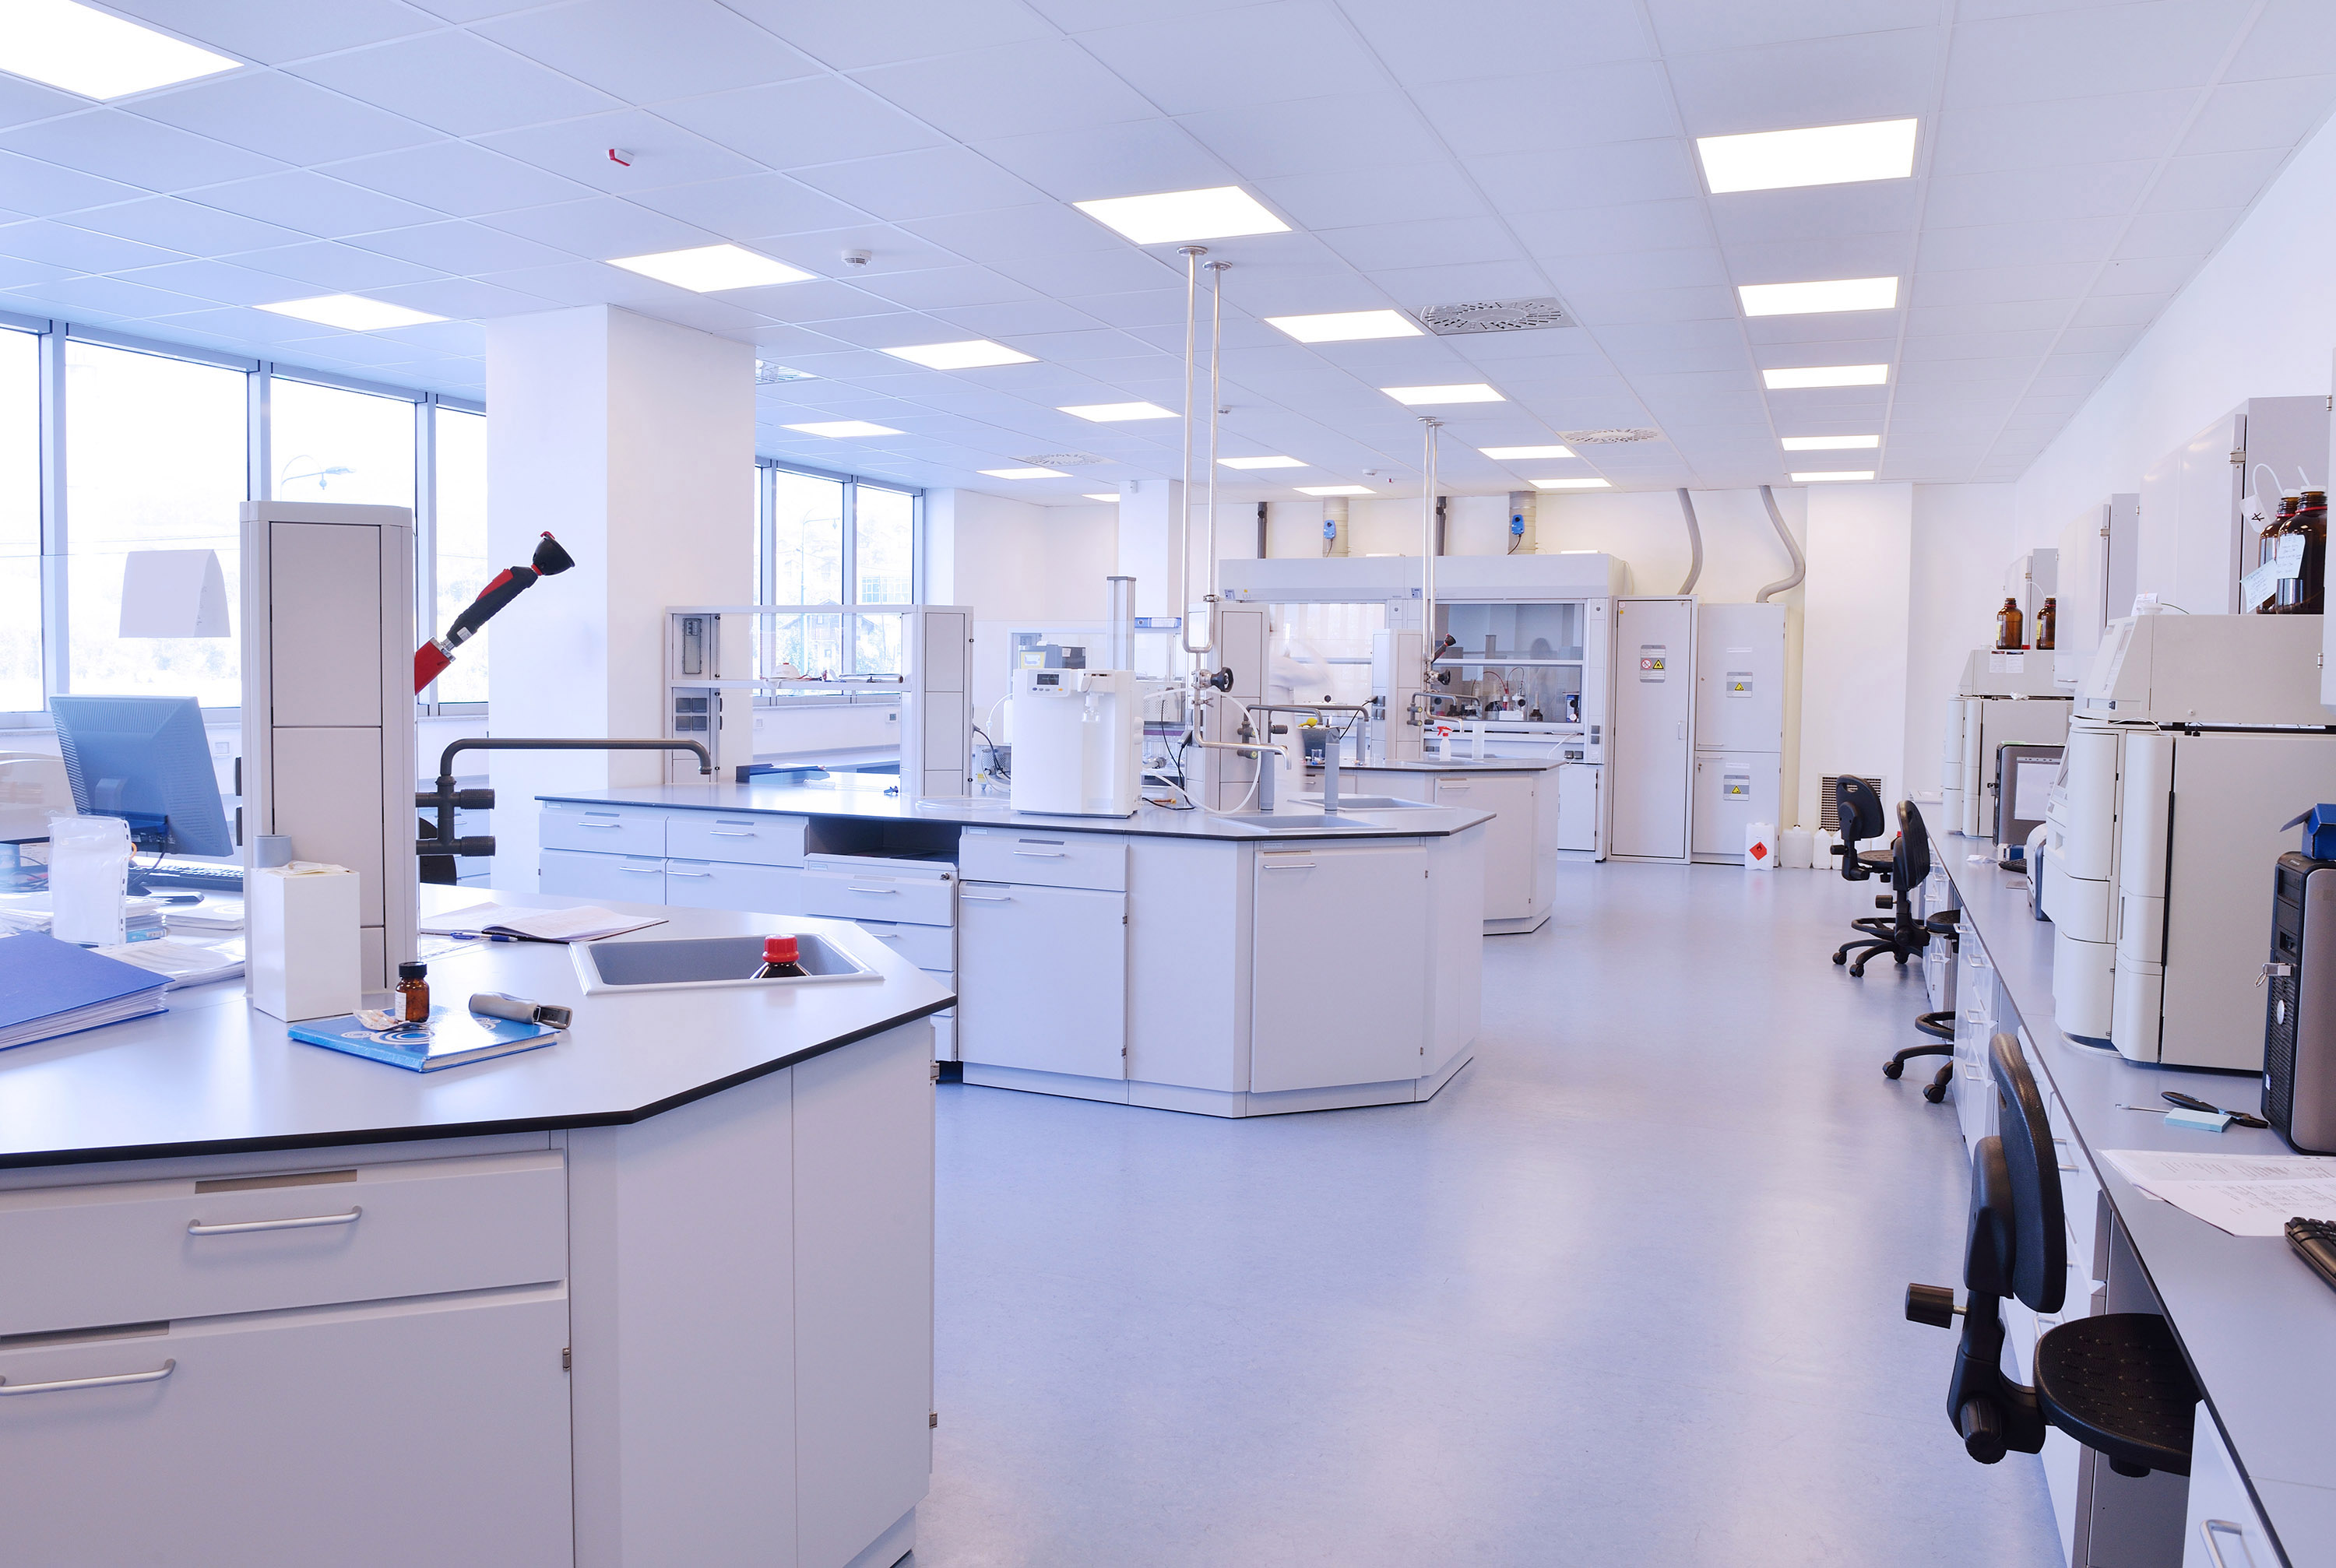 Caughlans Commercial Floor Covering - Resilient Tile Flooring in Hospital Lab